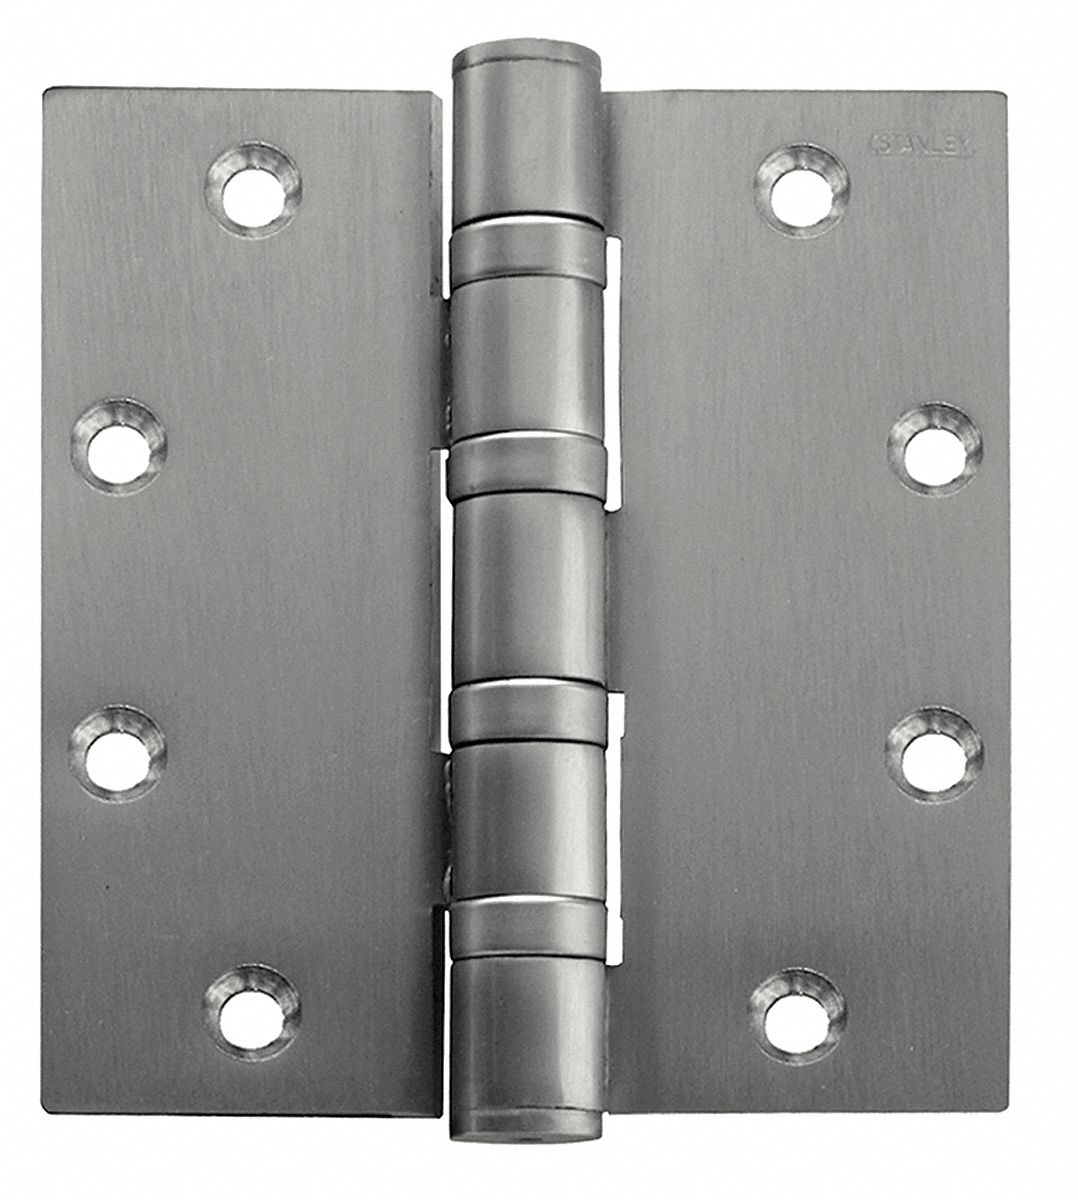 Inc 3 x 3-Inch by Northern Wholesale Supply Perko 1293DP9CHR Butt Hinge Boating